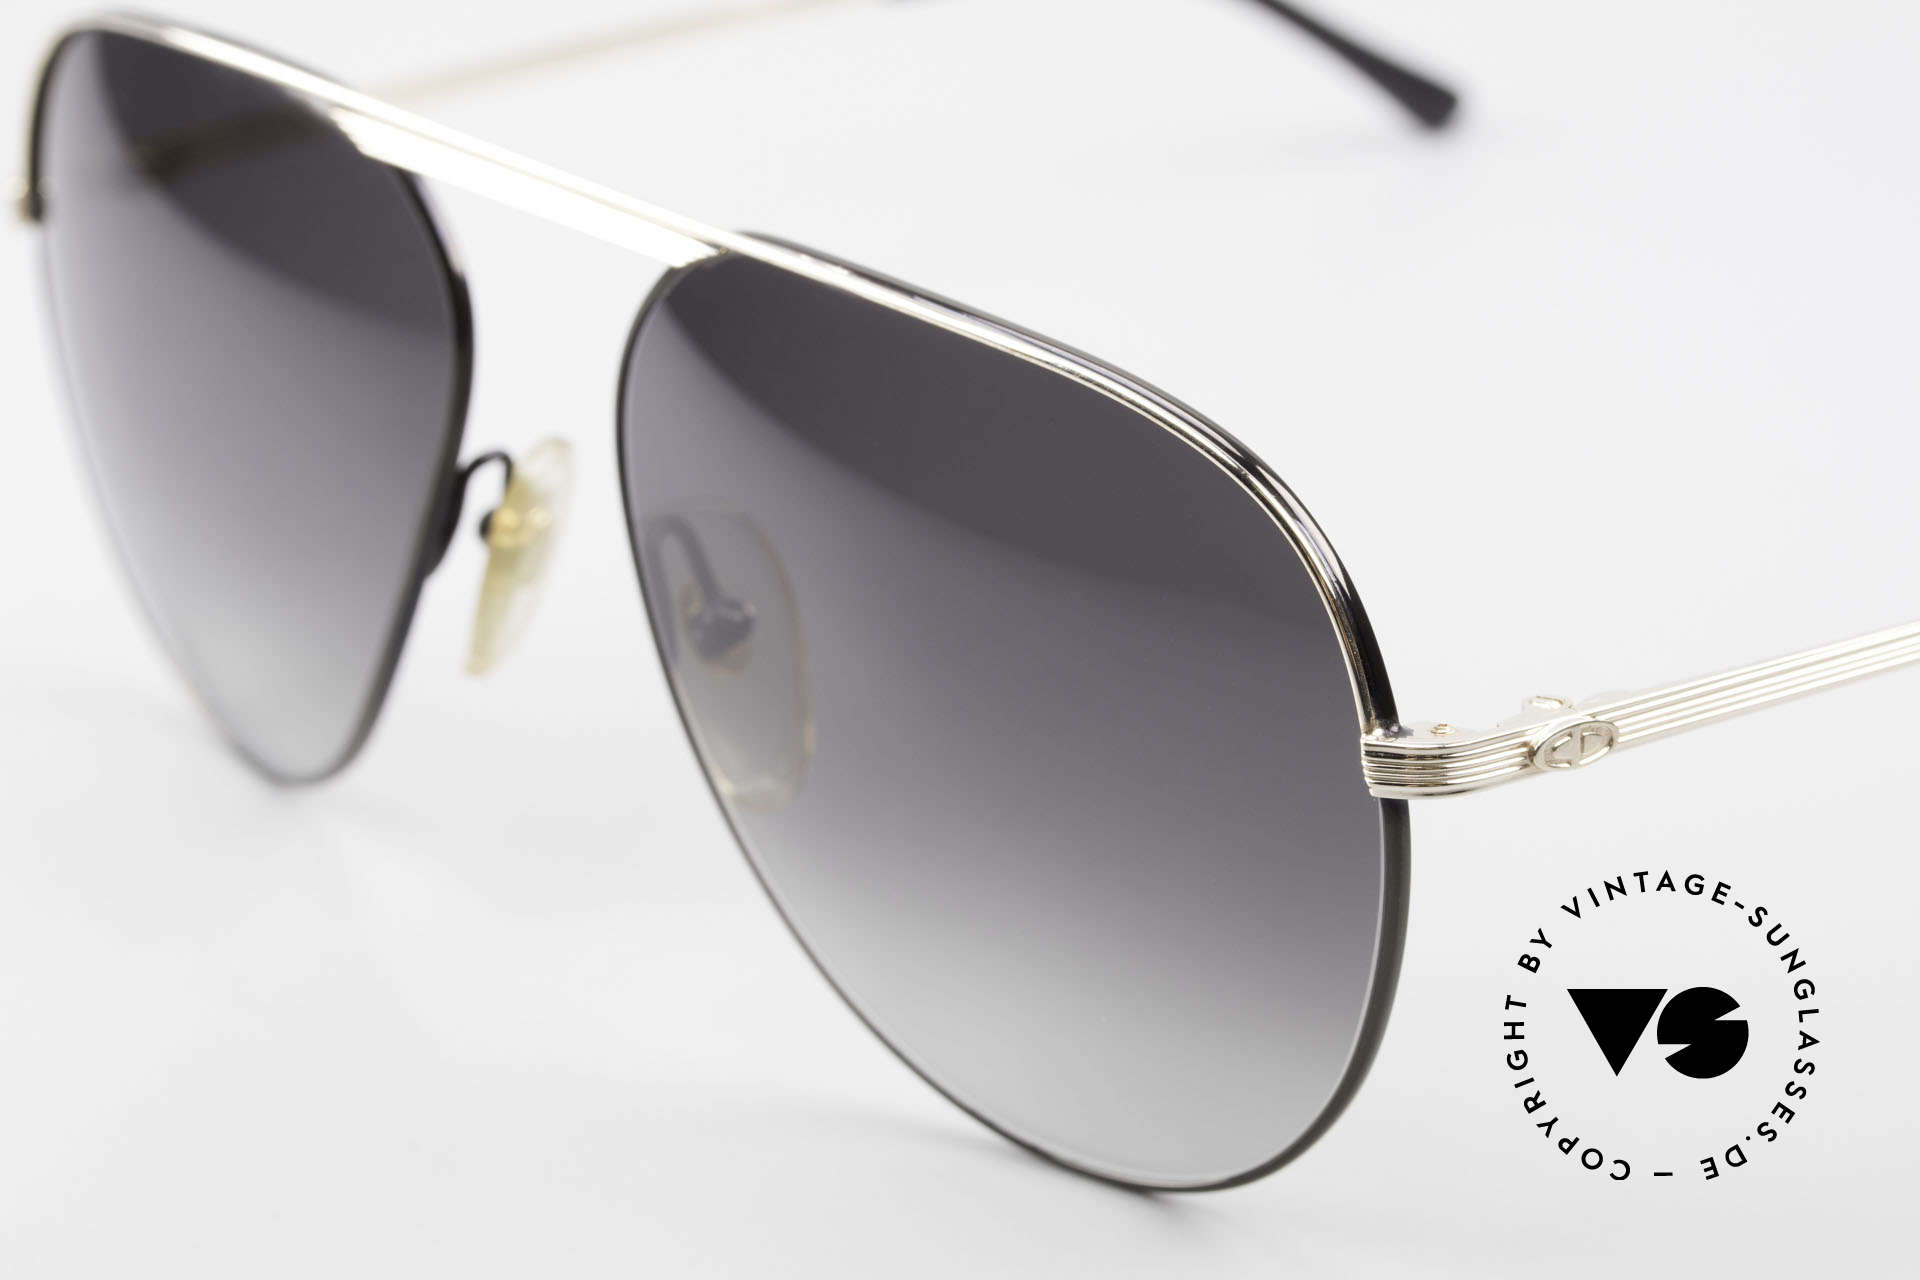 Christian Dior 2536 Rare 80's XXL Vintage Shades, noble gray-gradient lenses (100% UV protection), Made for Men